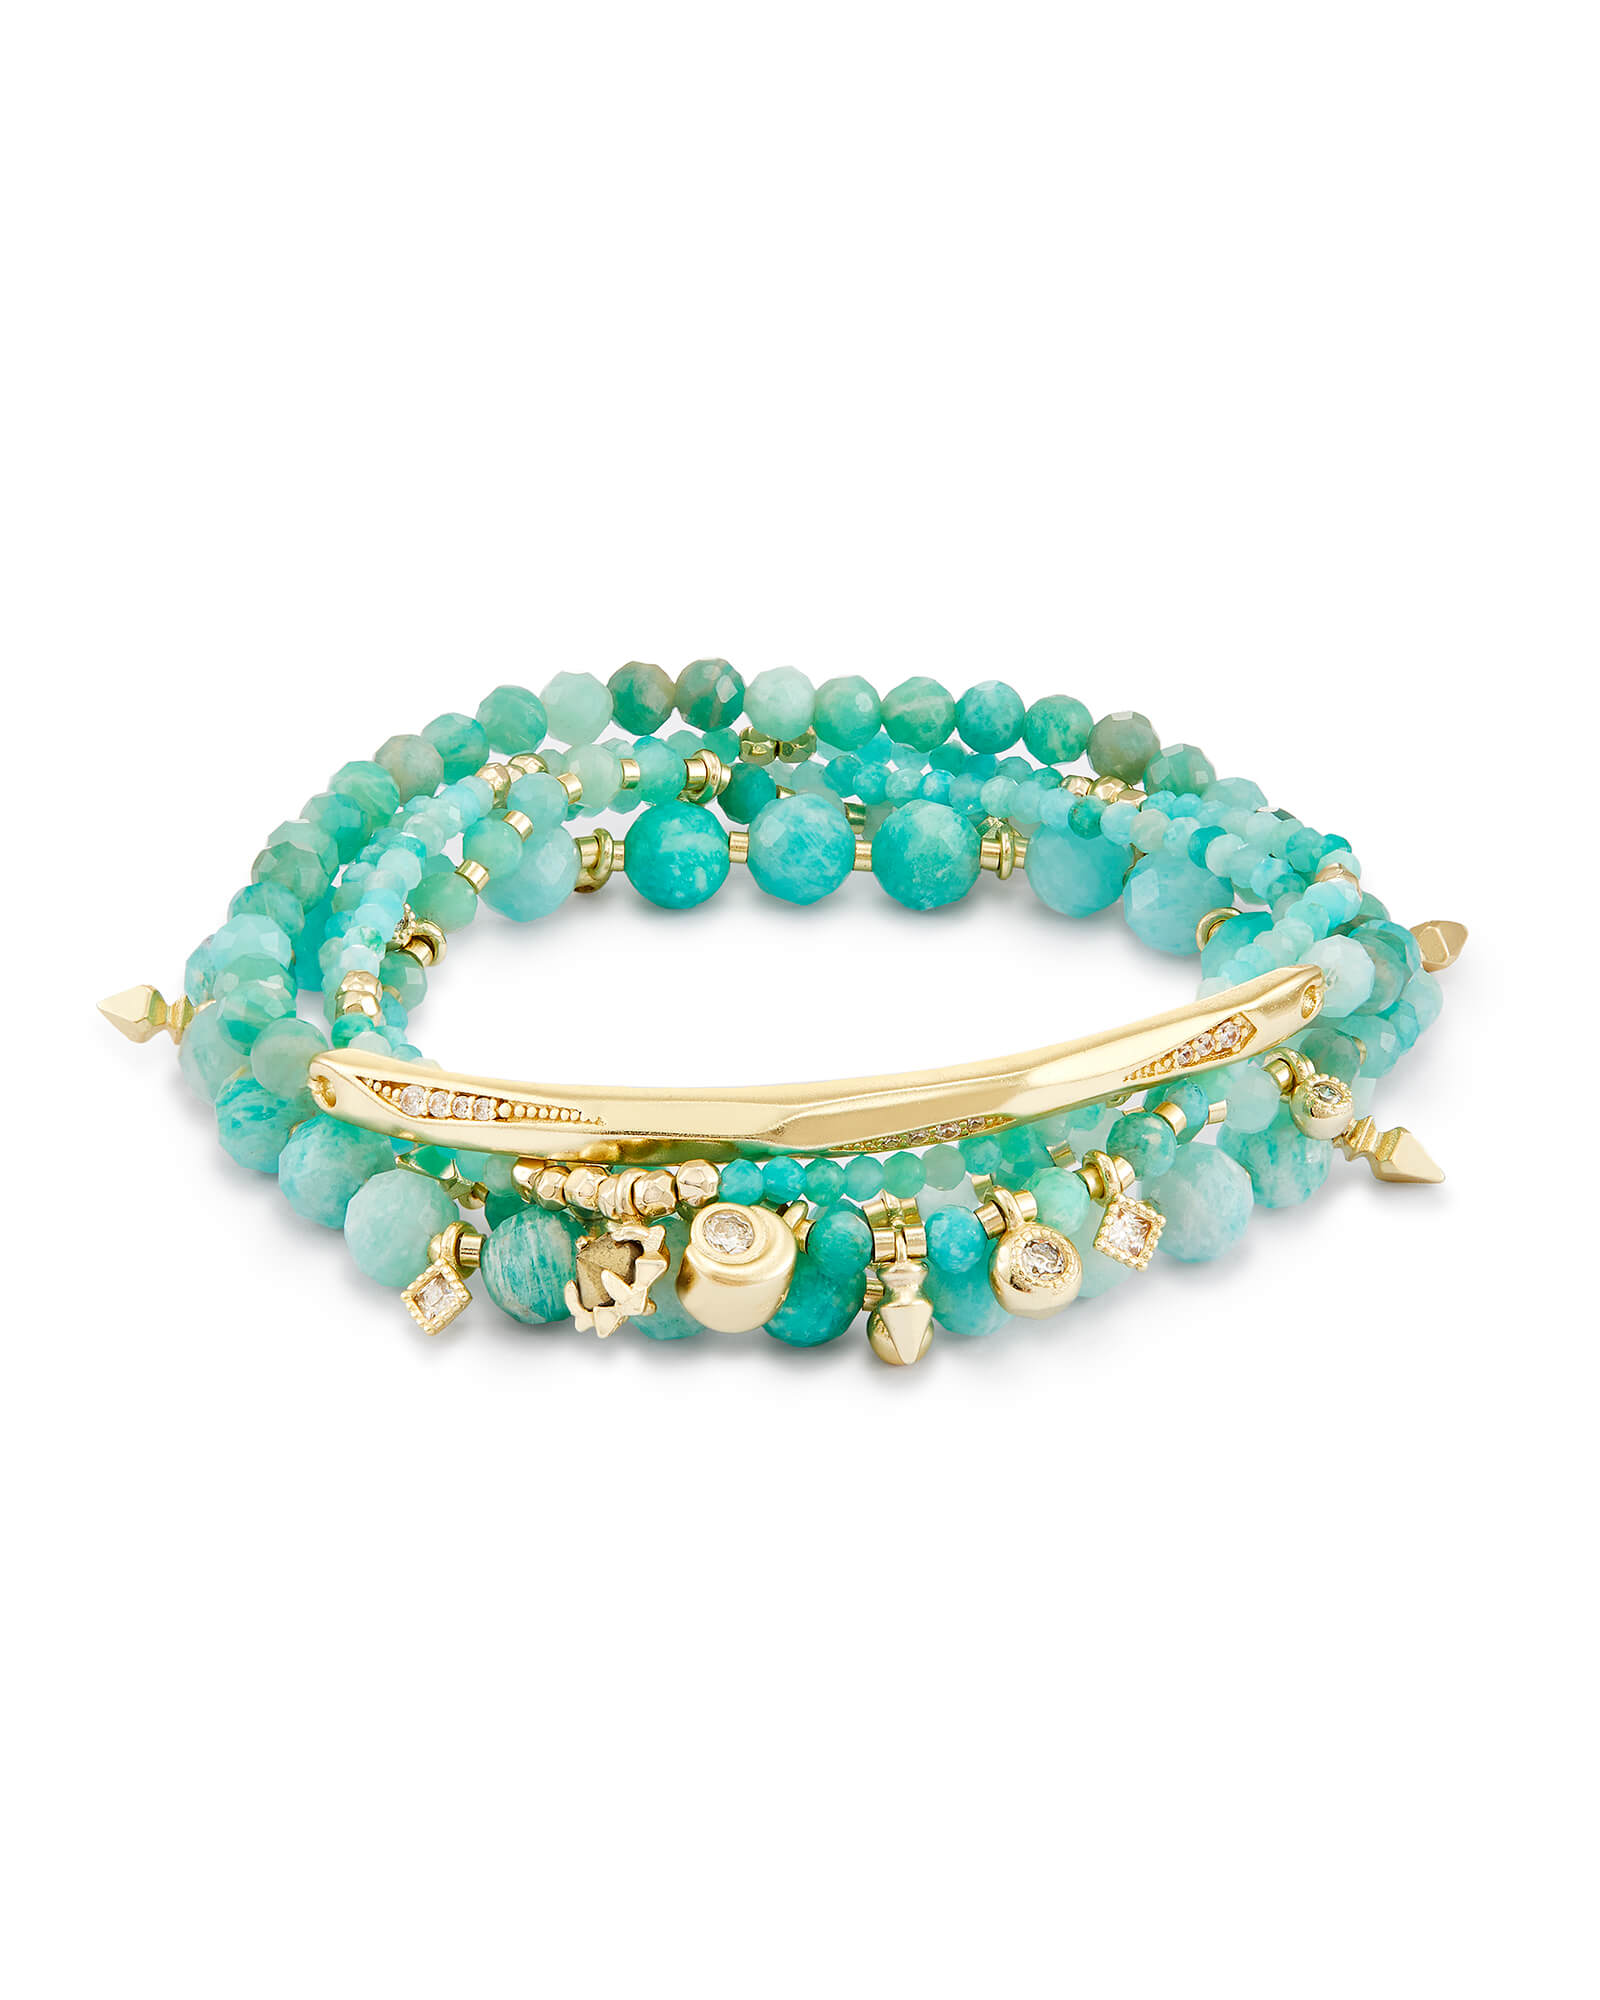 Bangle statement cuff chain bracelets kendra scott quick view nvjuhfo Images